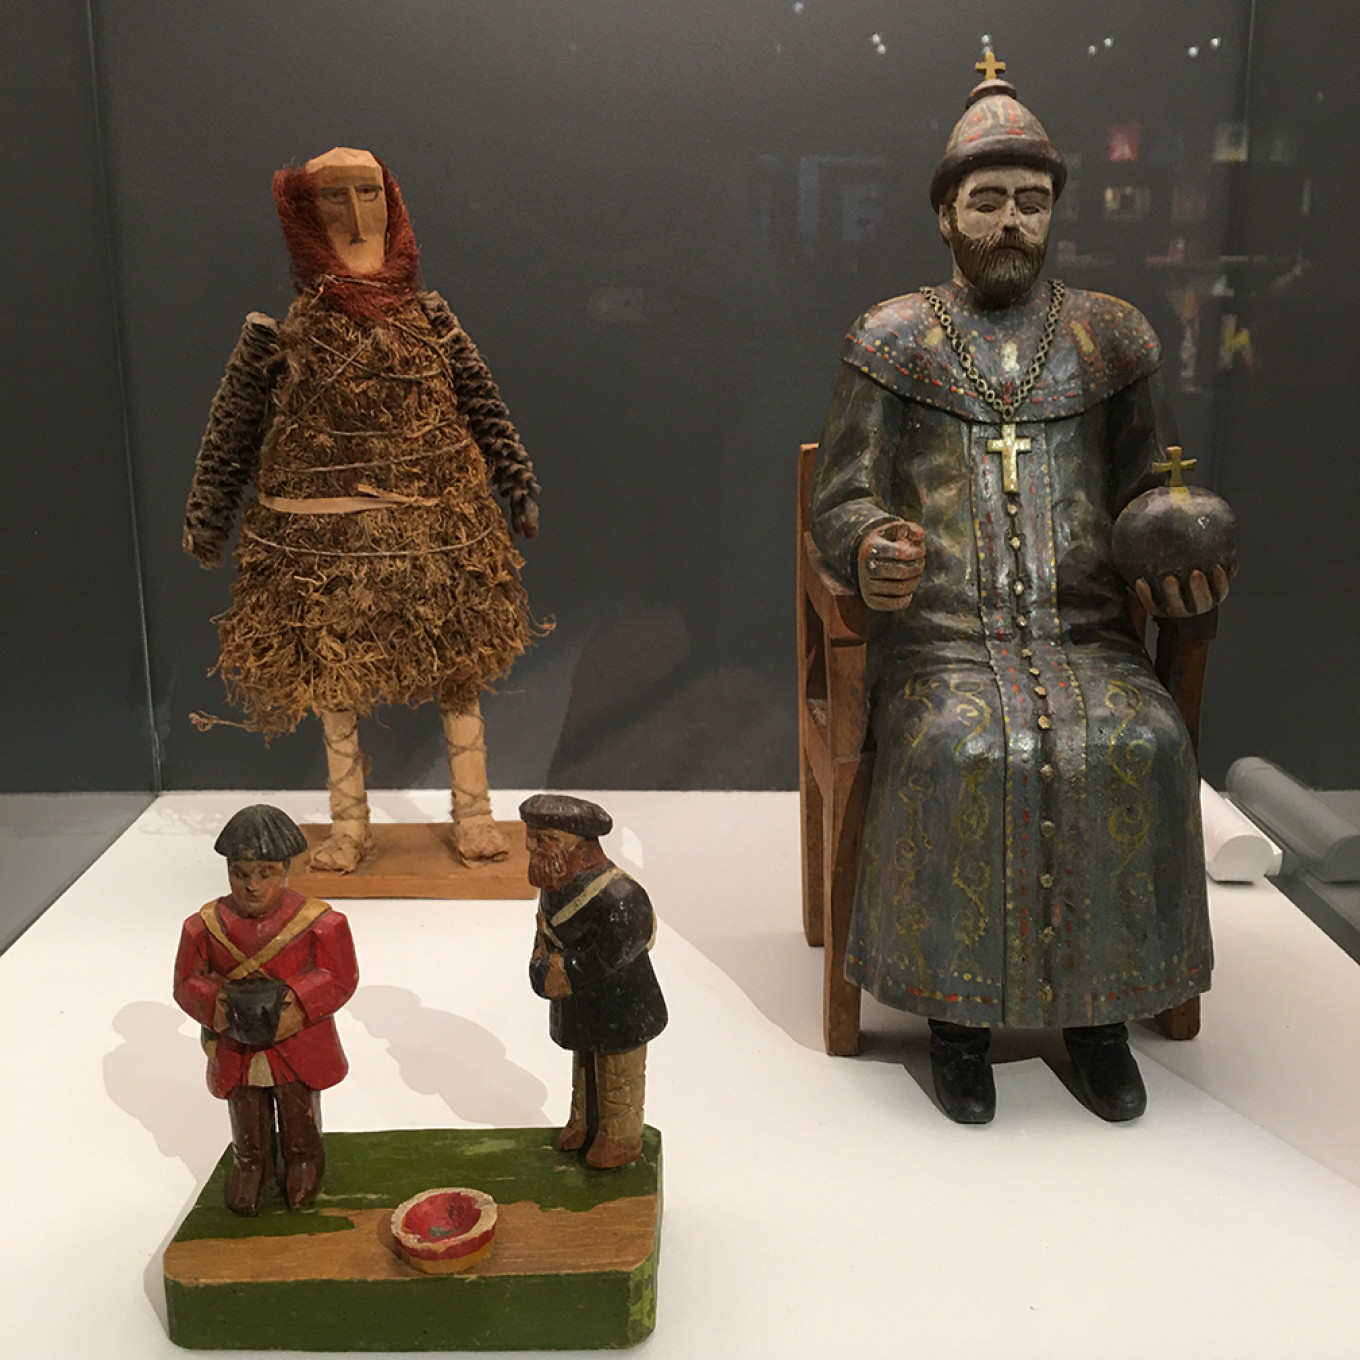 Toys from Costakis' collection, including one of Nicholas II from Nizhny Novgorod. Michele A. Berdy / MT